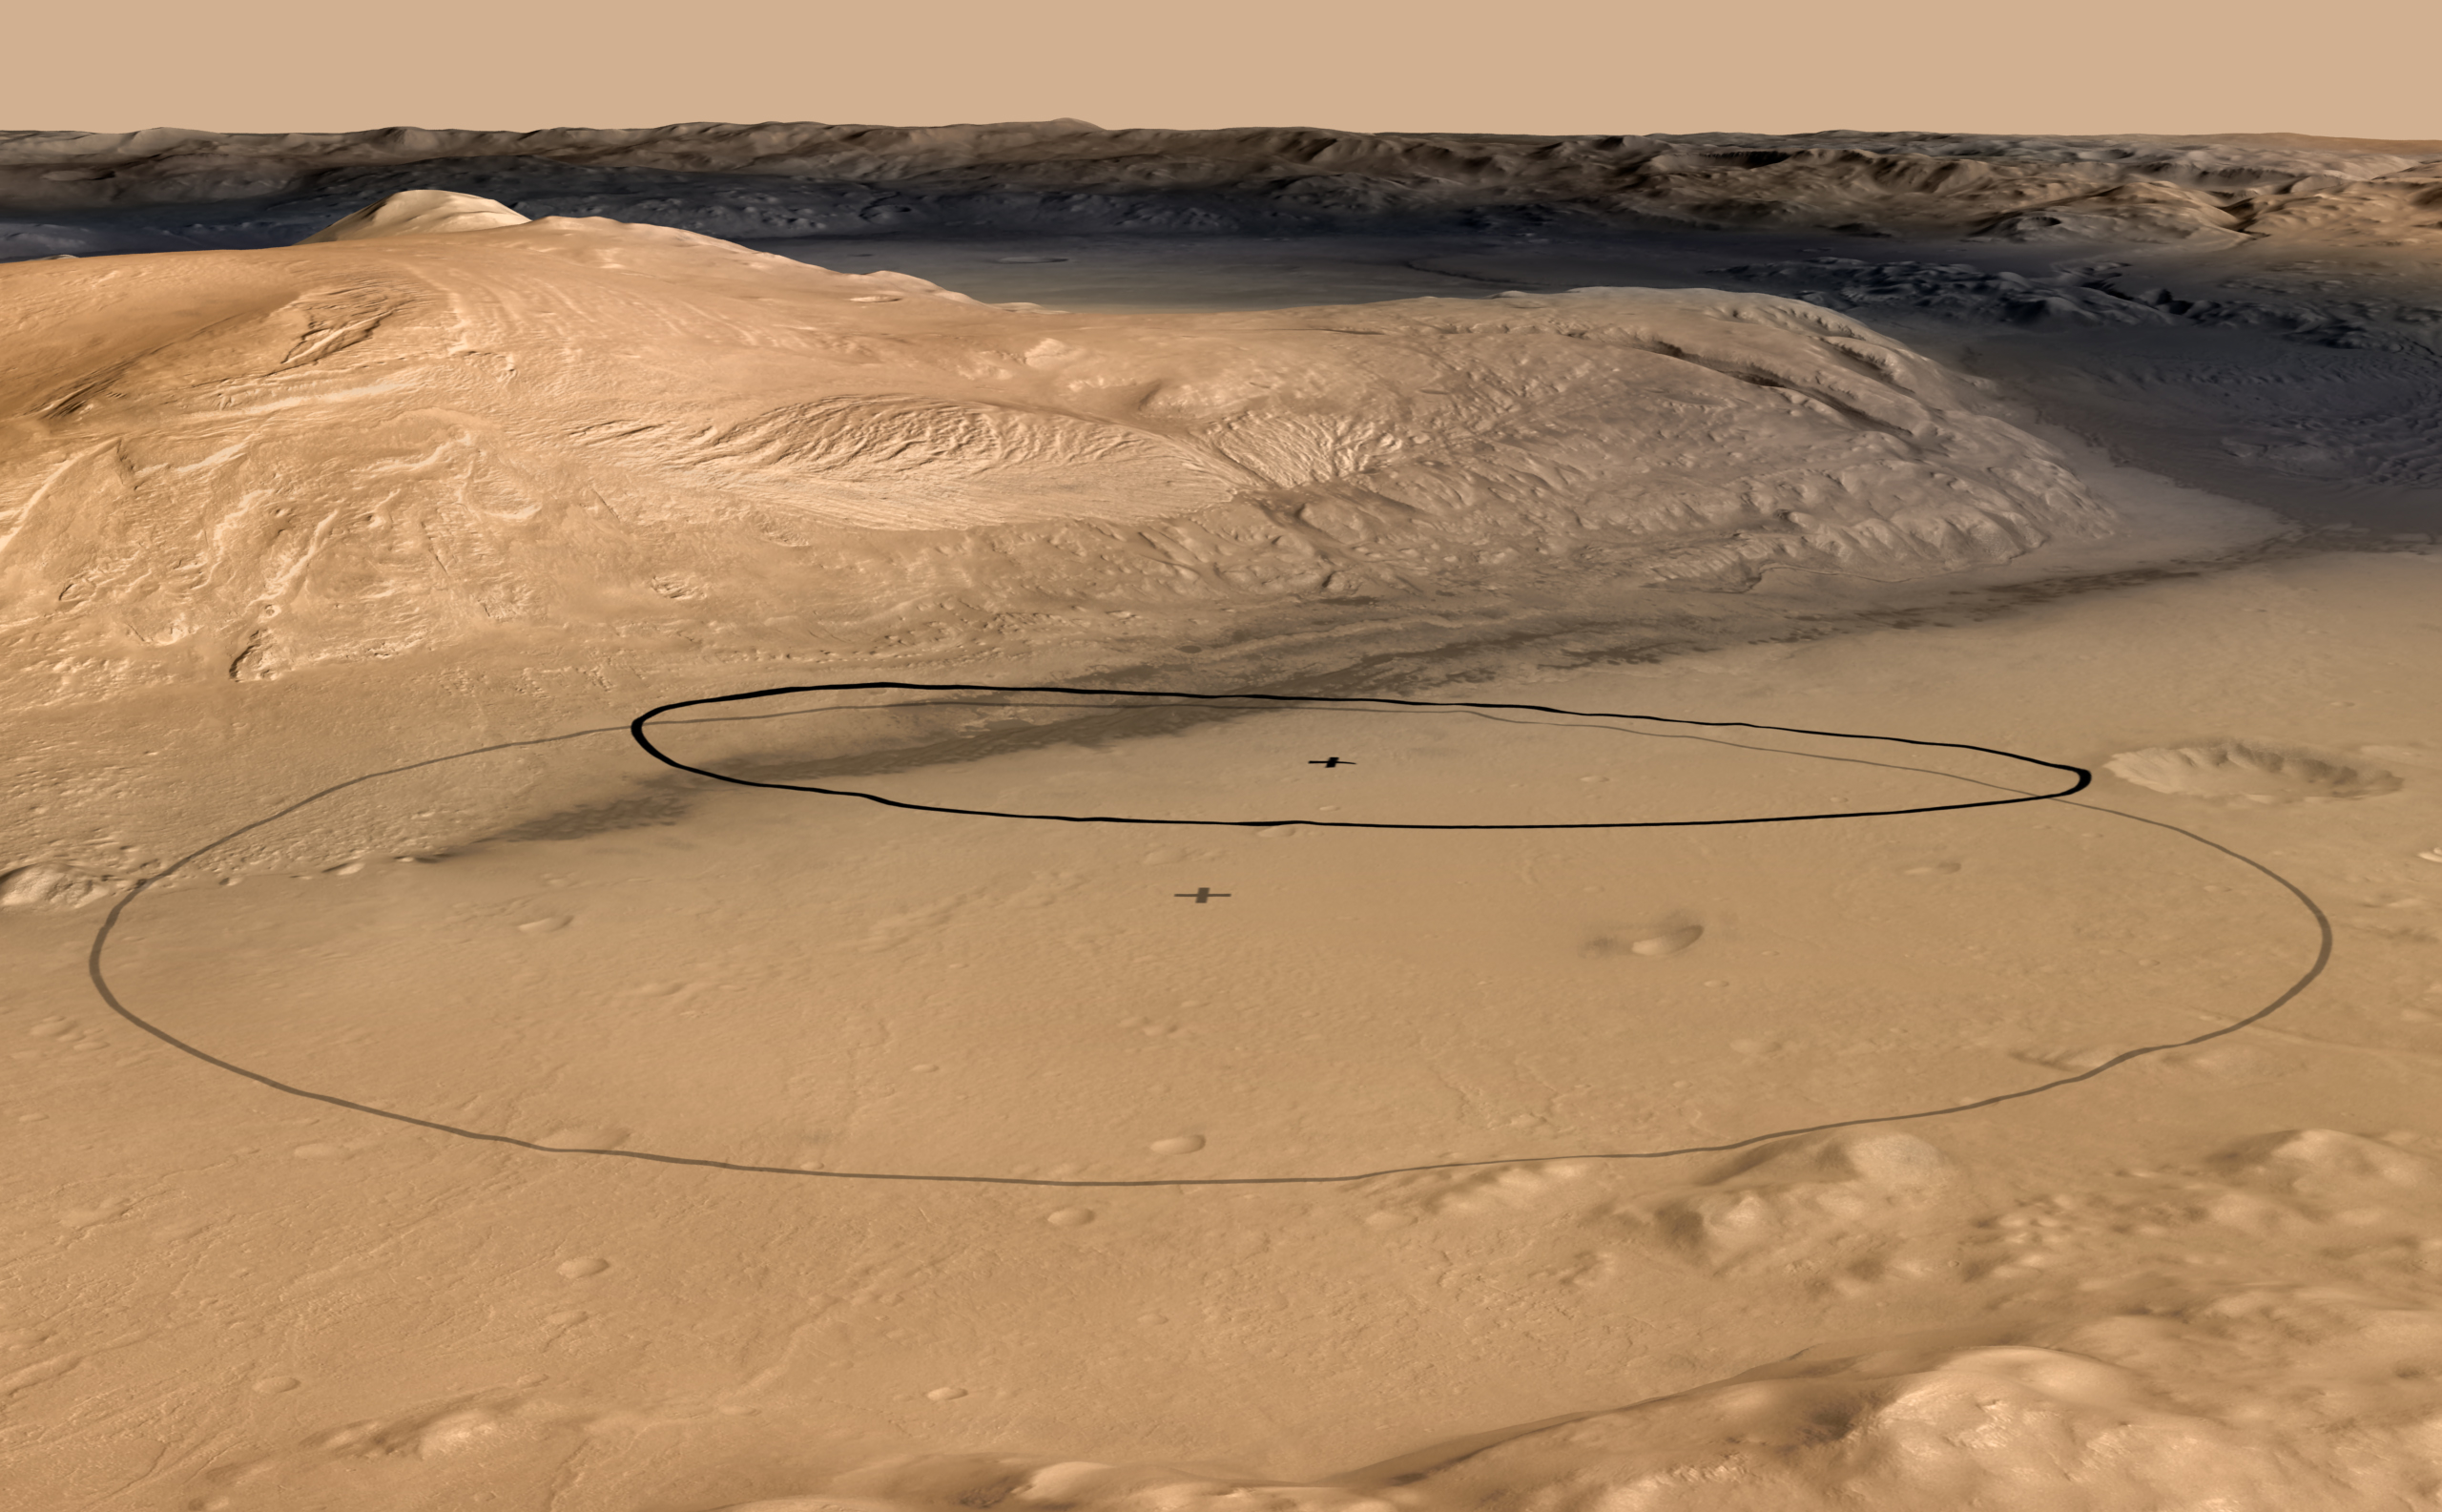 This image shows changes in the target landing area for Curiosity, the rover of NASA's Mars Science Laboratory project.